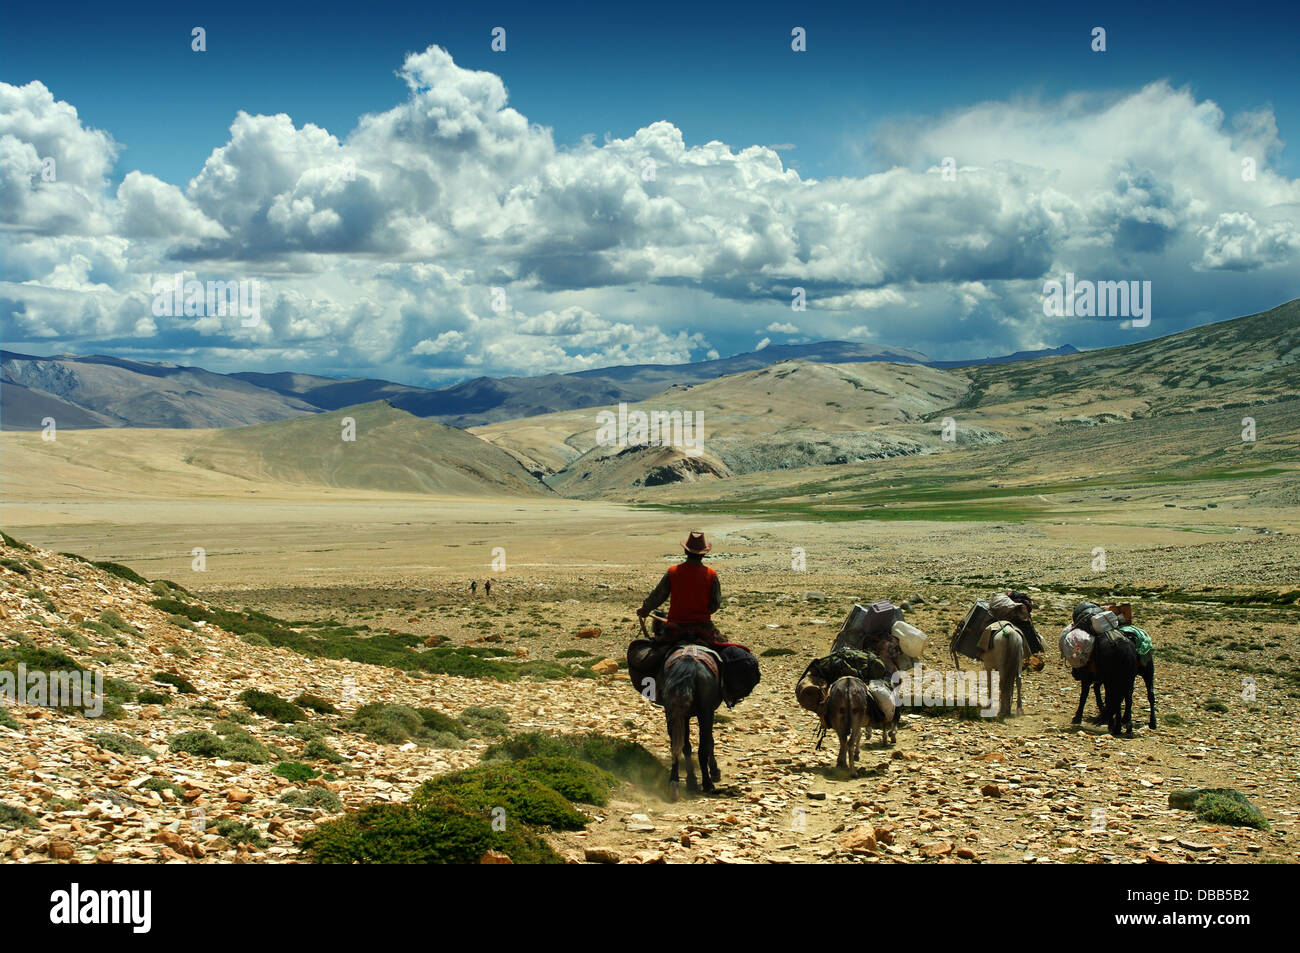 cow-boy in the plains of the Himalayas in Ladakh - Stock Image